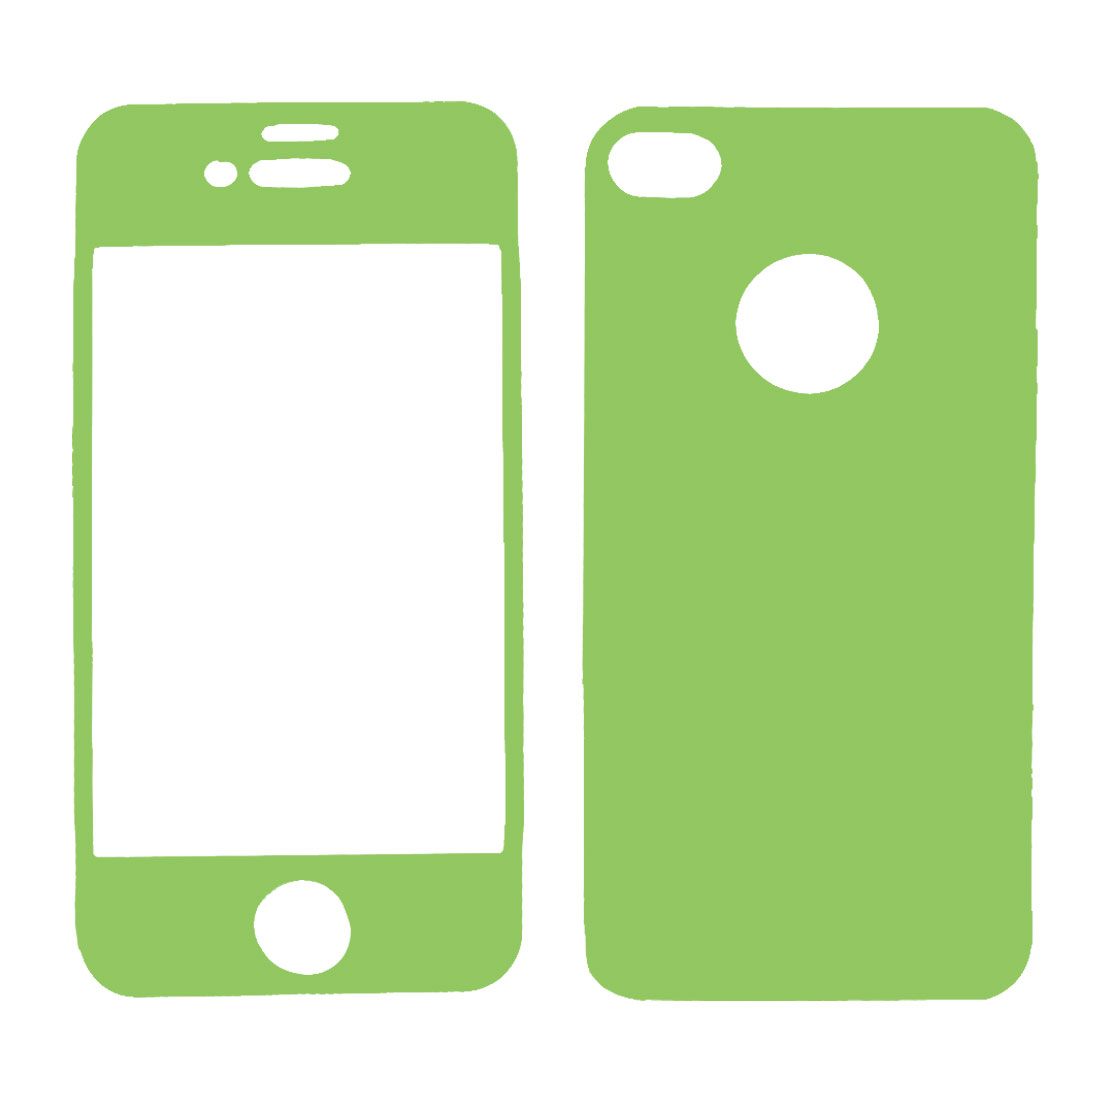 Green Vinyl Front Back Decal Sticker Protector for iPhone 4 4G 4S 4GS